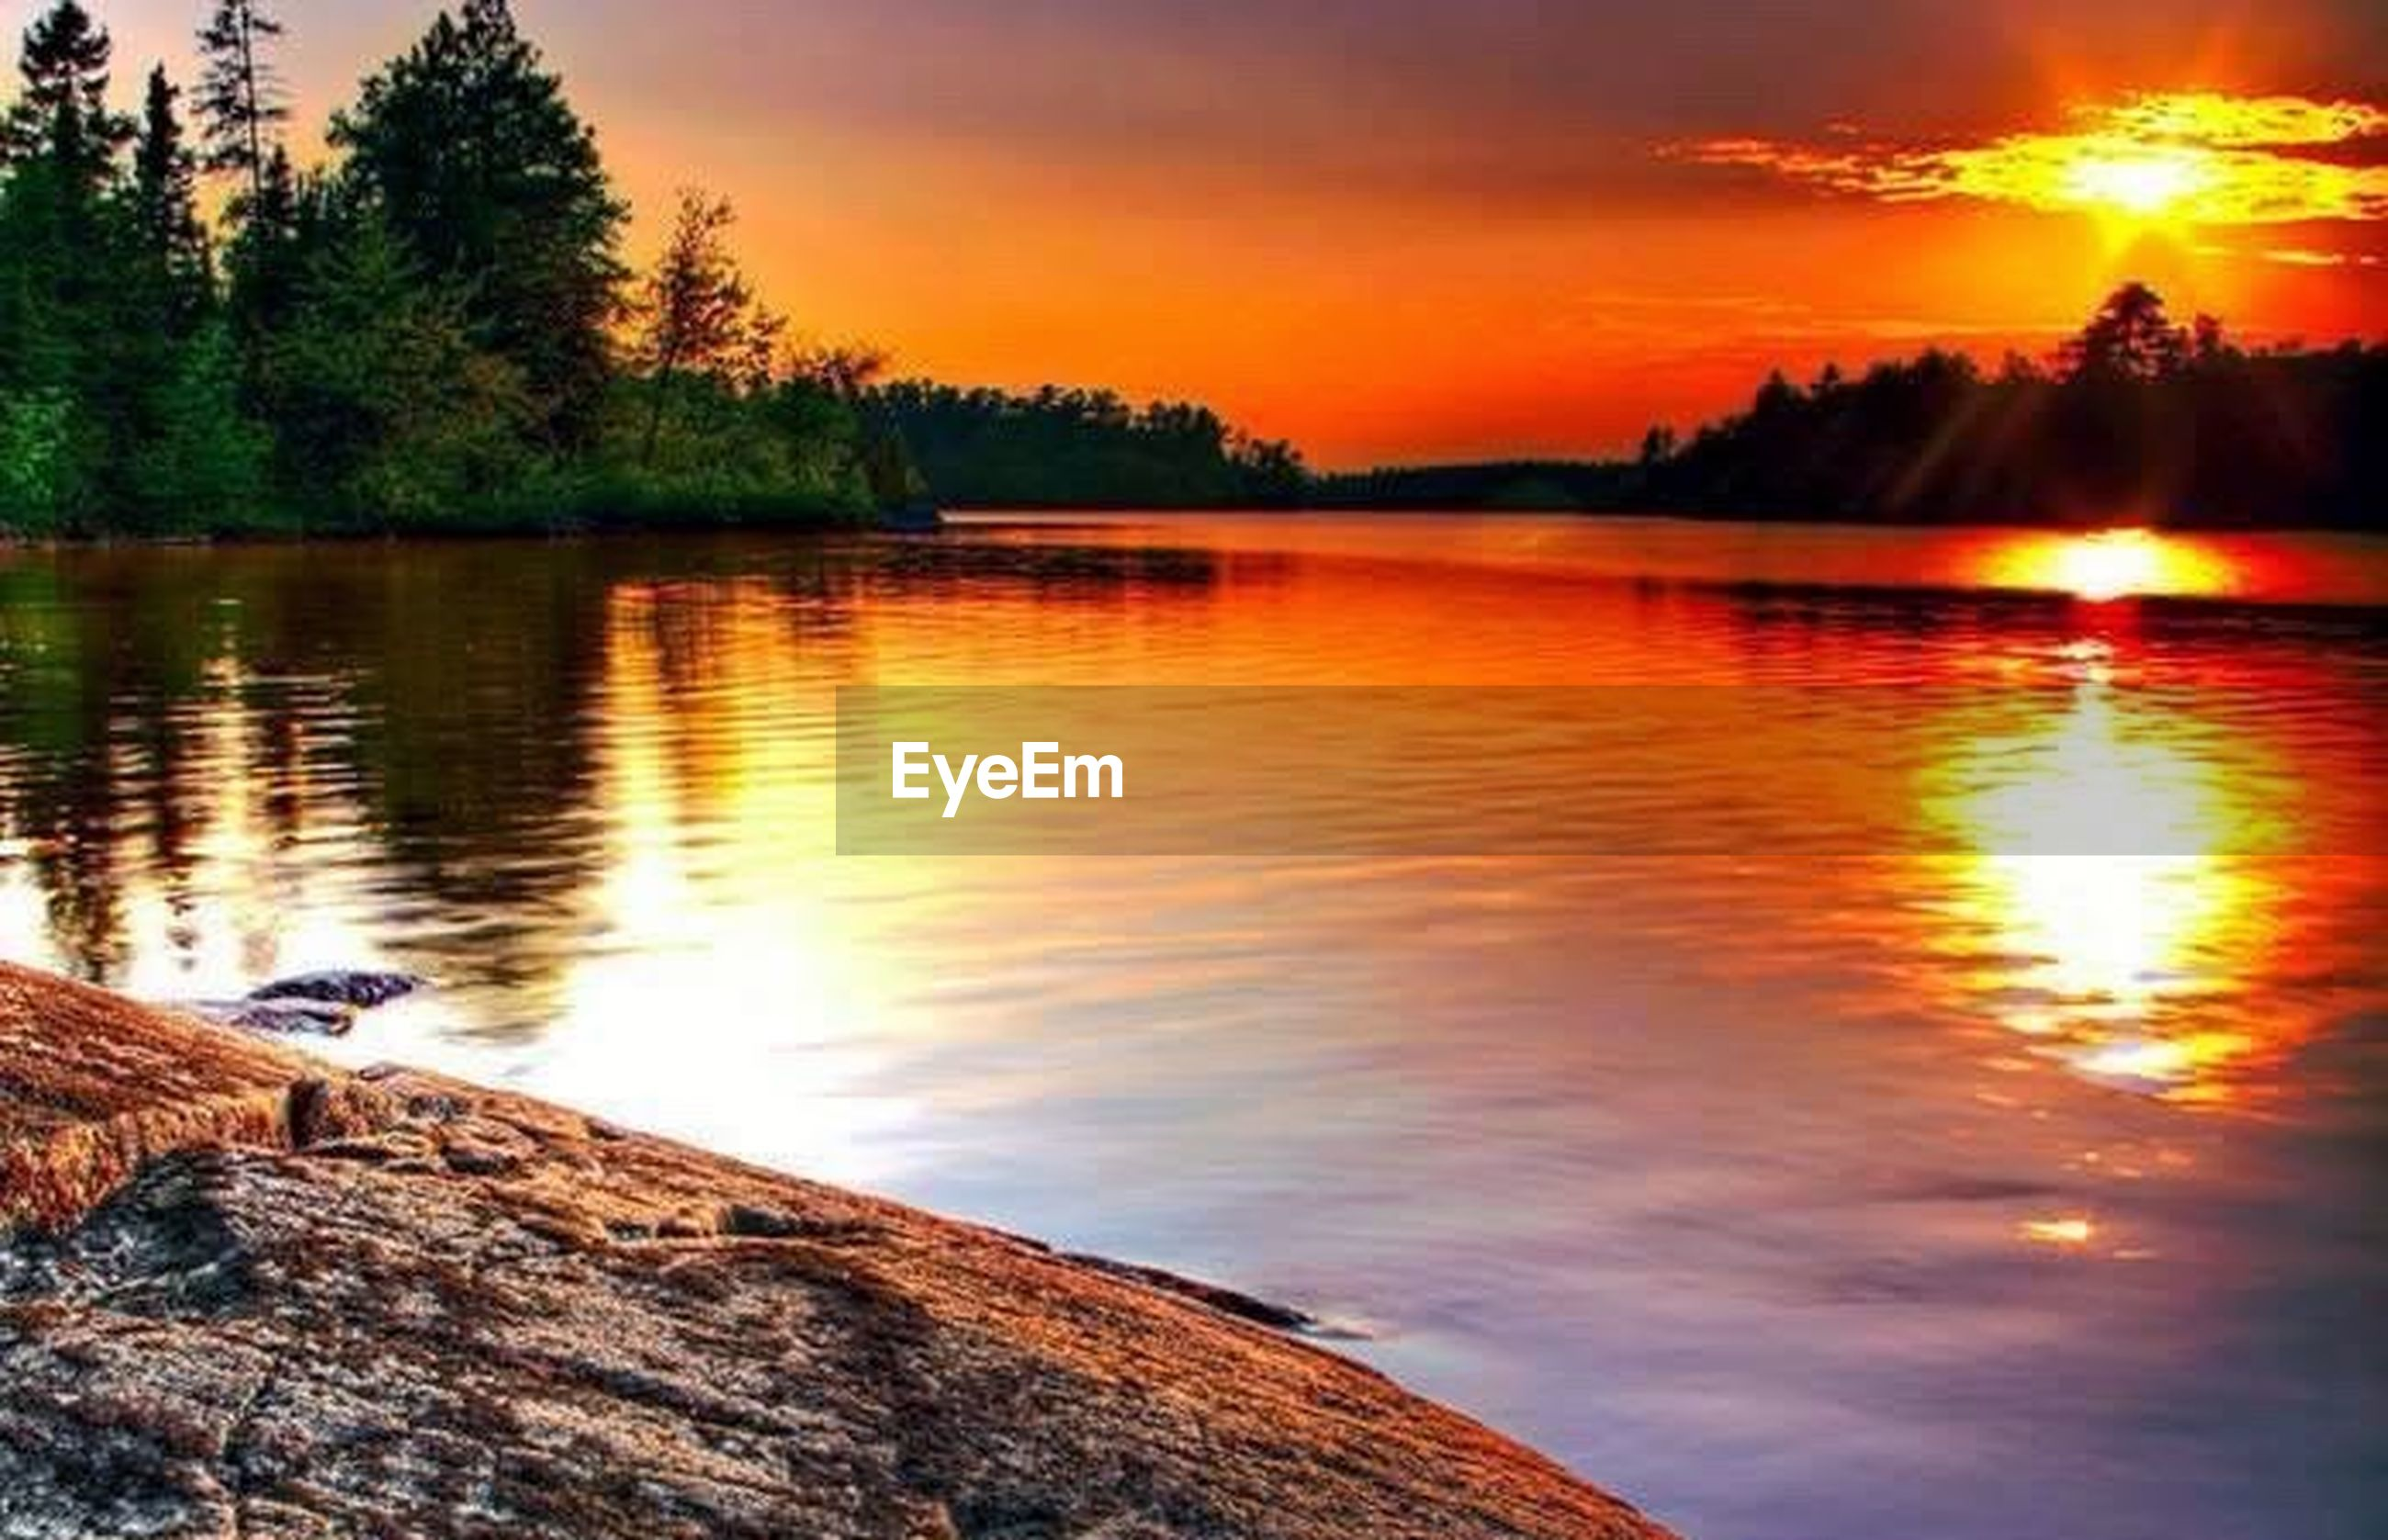 sunset, reflection, tree, lake, nature, scenics, water, tranquil scene, beauty in nature, outdoors, cloud - sky, sky, tranquility, travel destinations, no people, day, animal themes